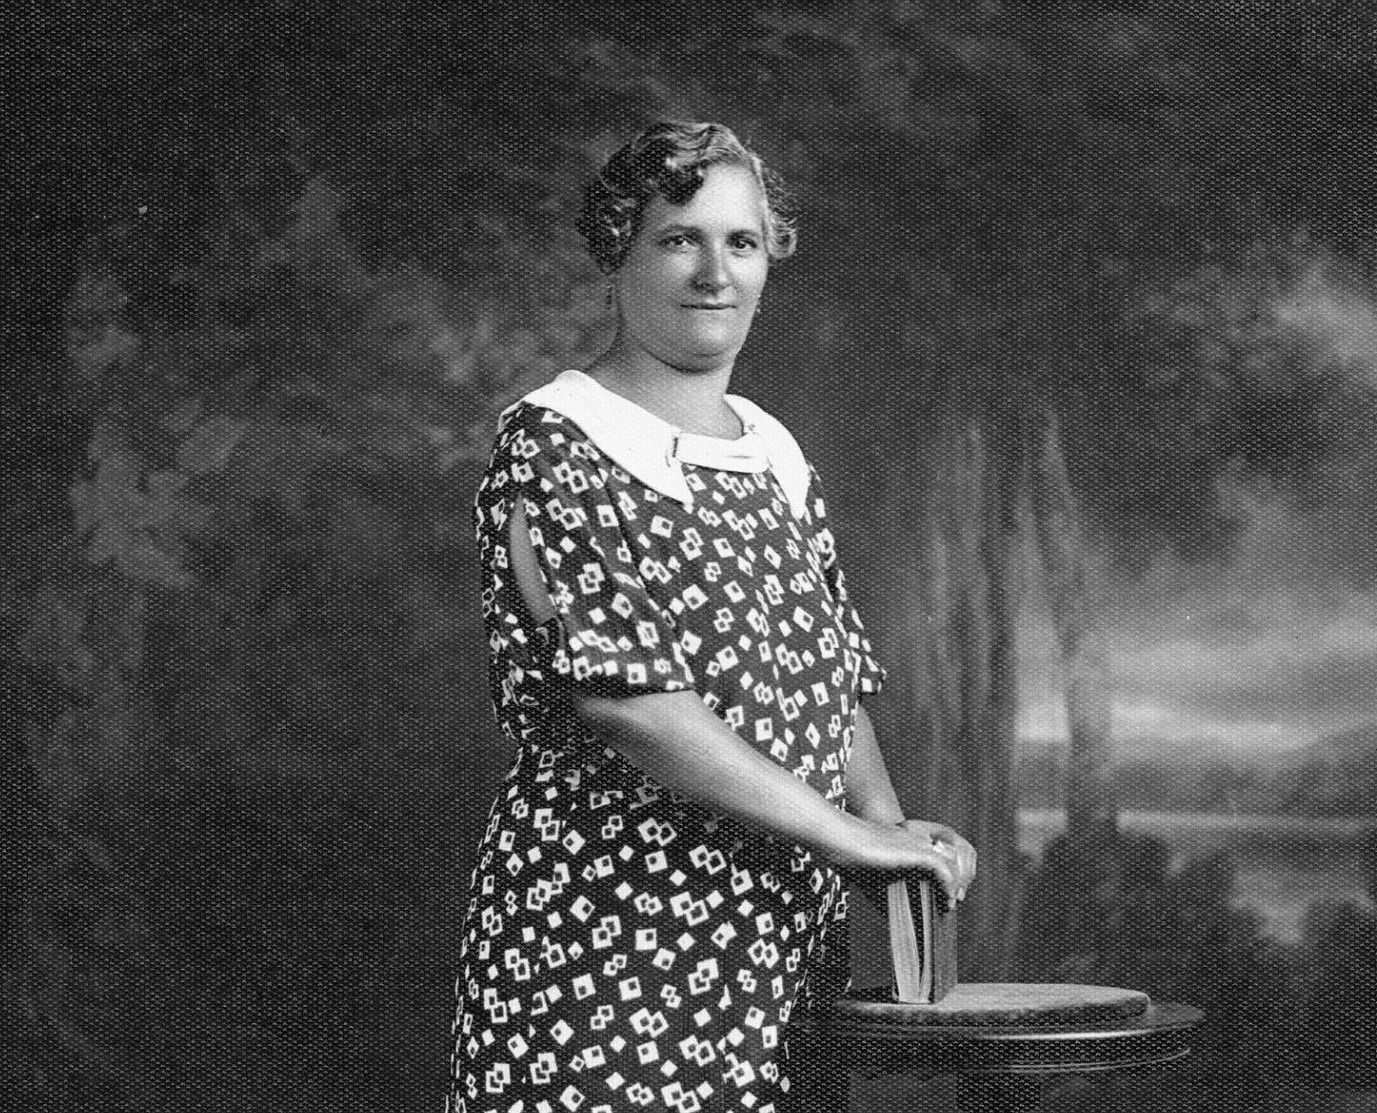 A full-figured adult woman with a light skin tone and short, styled hair poses holding a book in a patterned short-sleeve dress